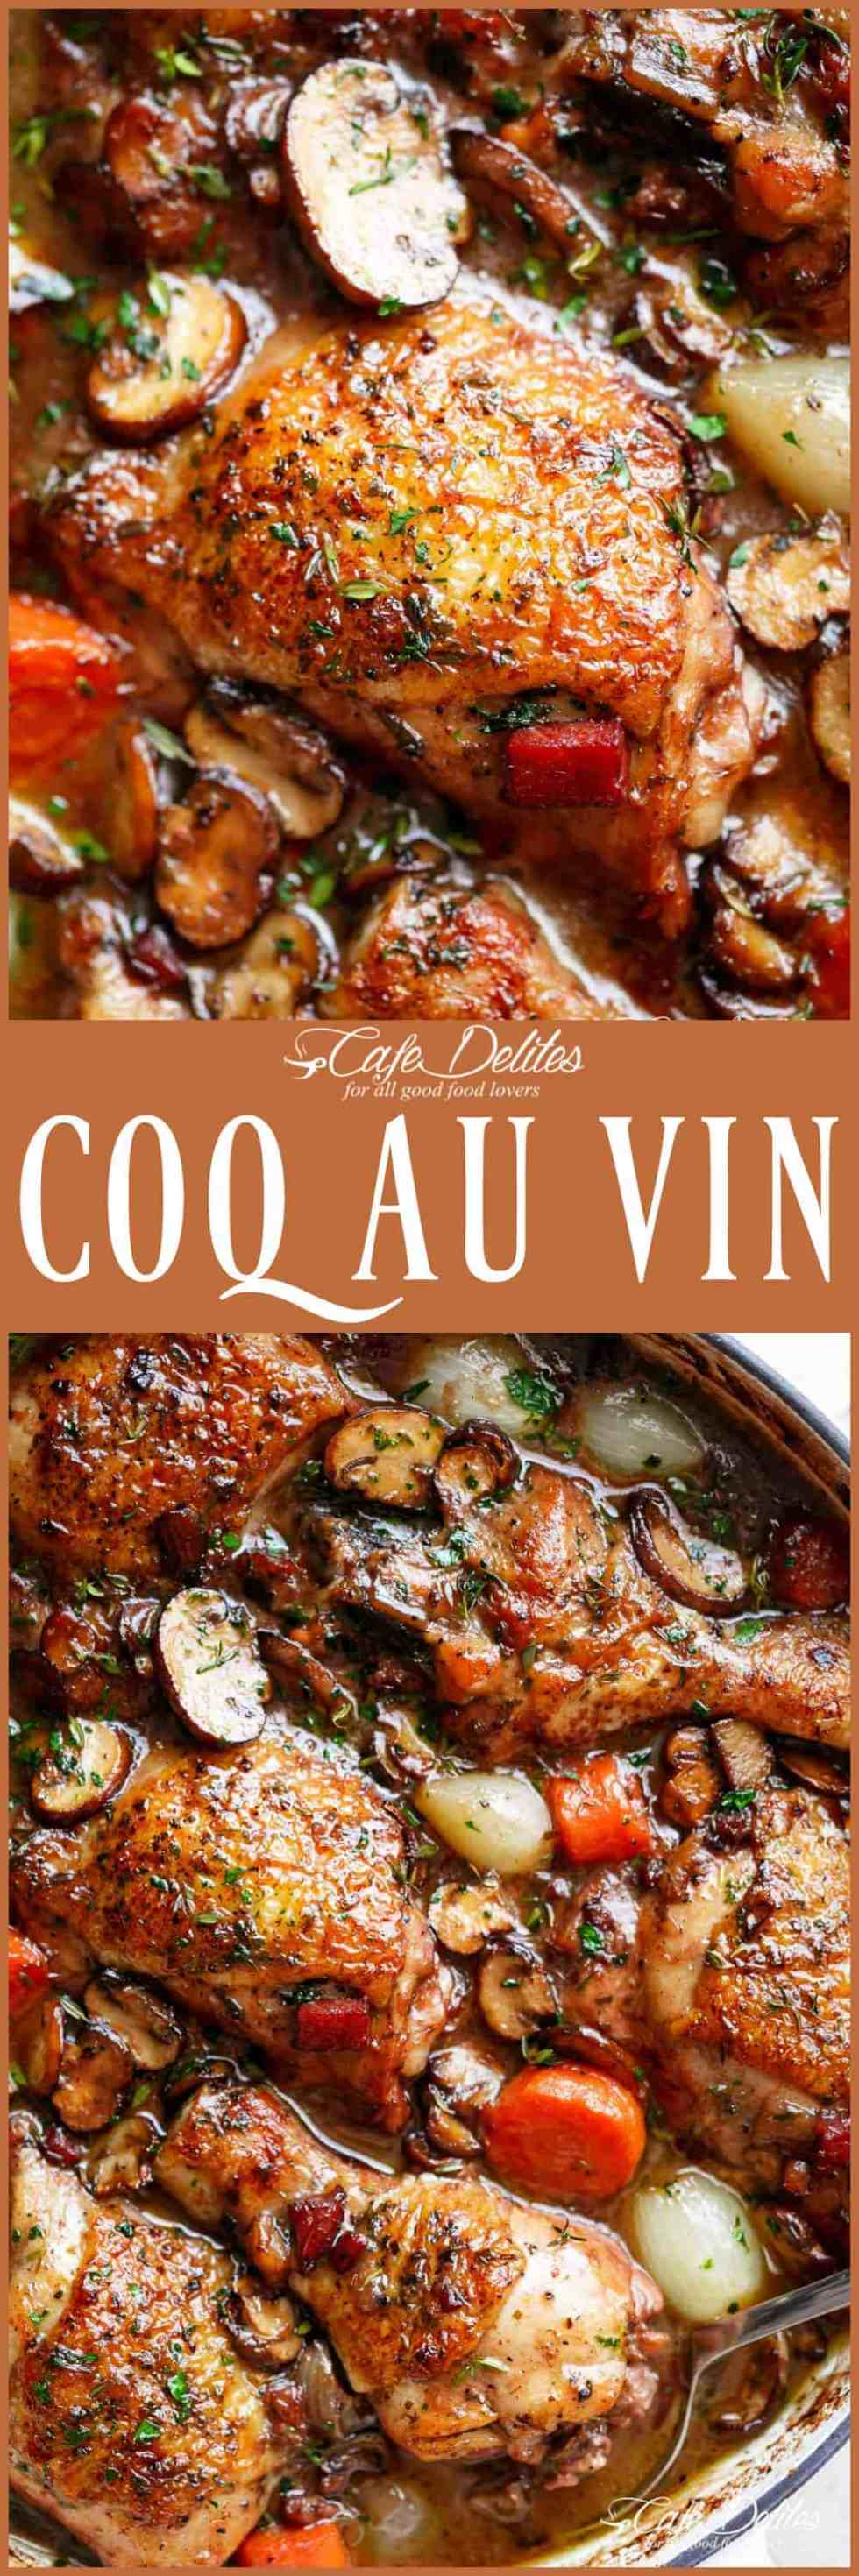 Coq Au Vin, or chicken in wine, is a popular classic French dishmade easy in one pan! With crispy chicken drumsticks, chicken thighs and bacon, this Coq au vin gets everybody talking!Serve with creamy mashed potato or cauliflower smothered with butter, and the most delicious chicken dinner is ready on the table! | cafedelites.com